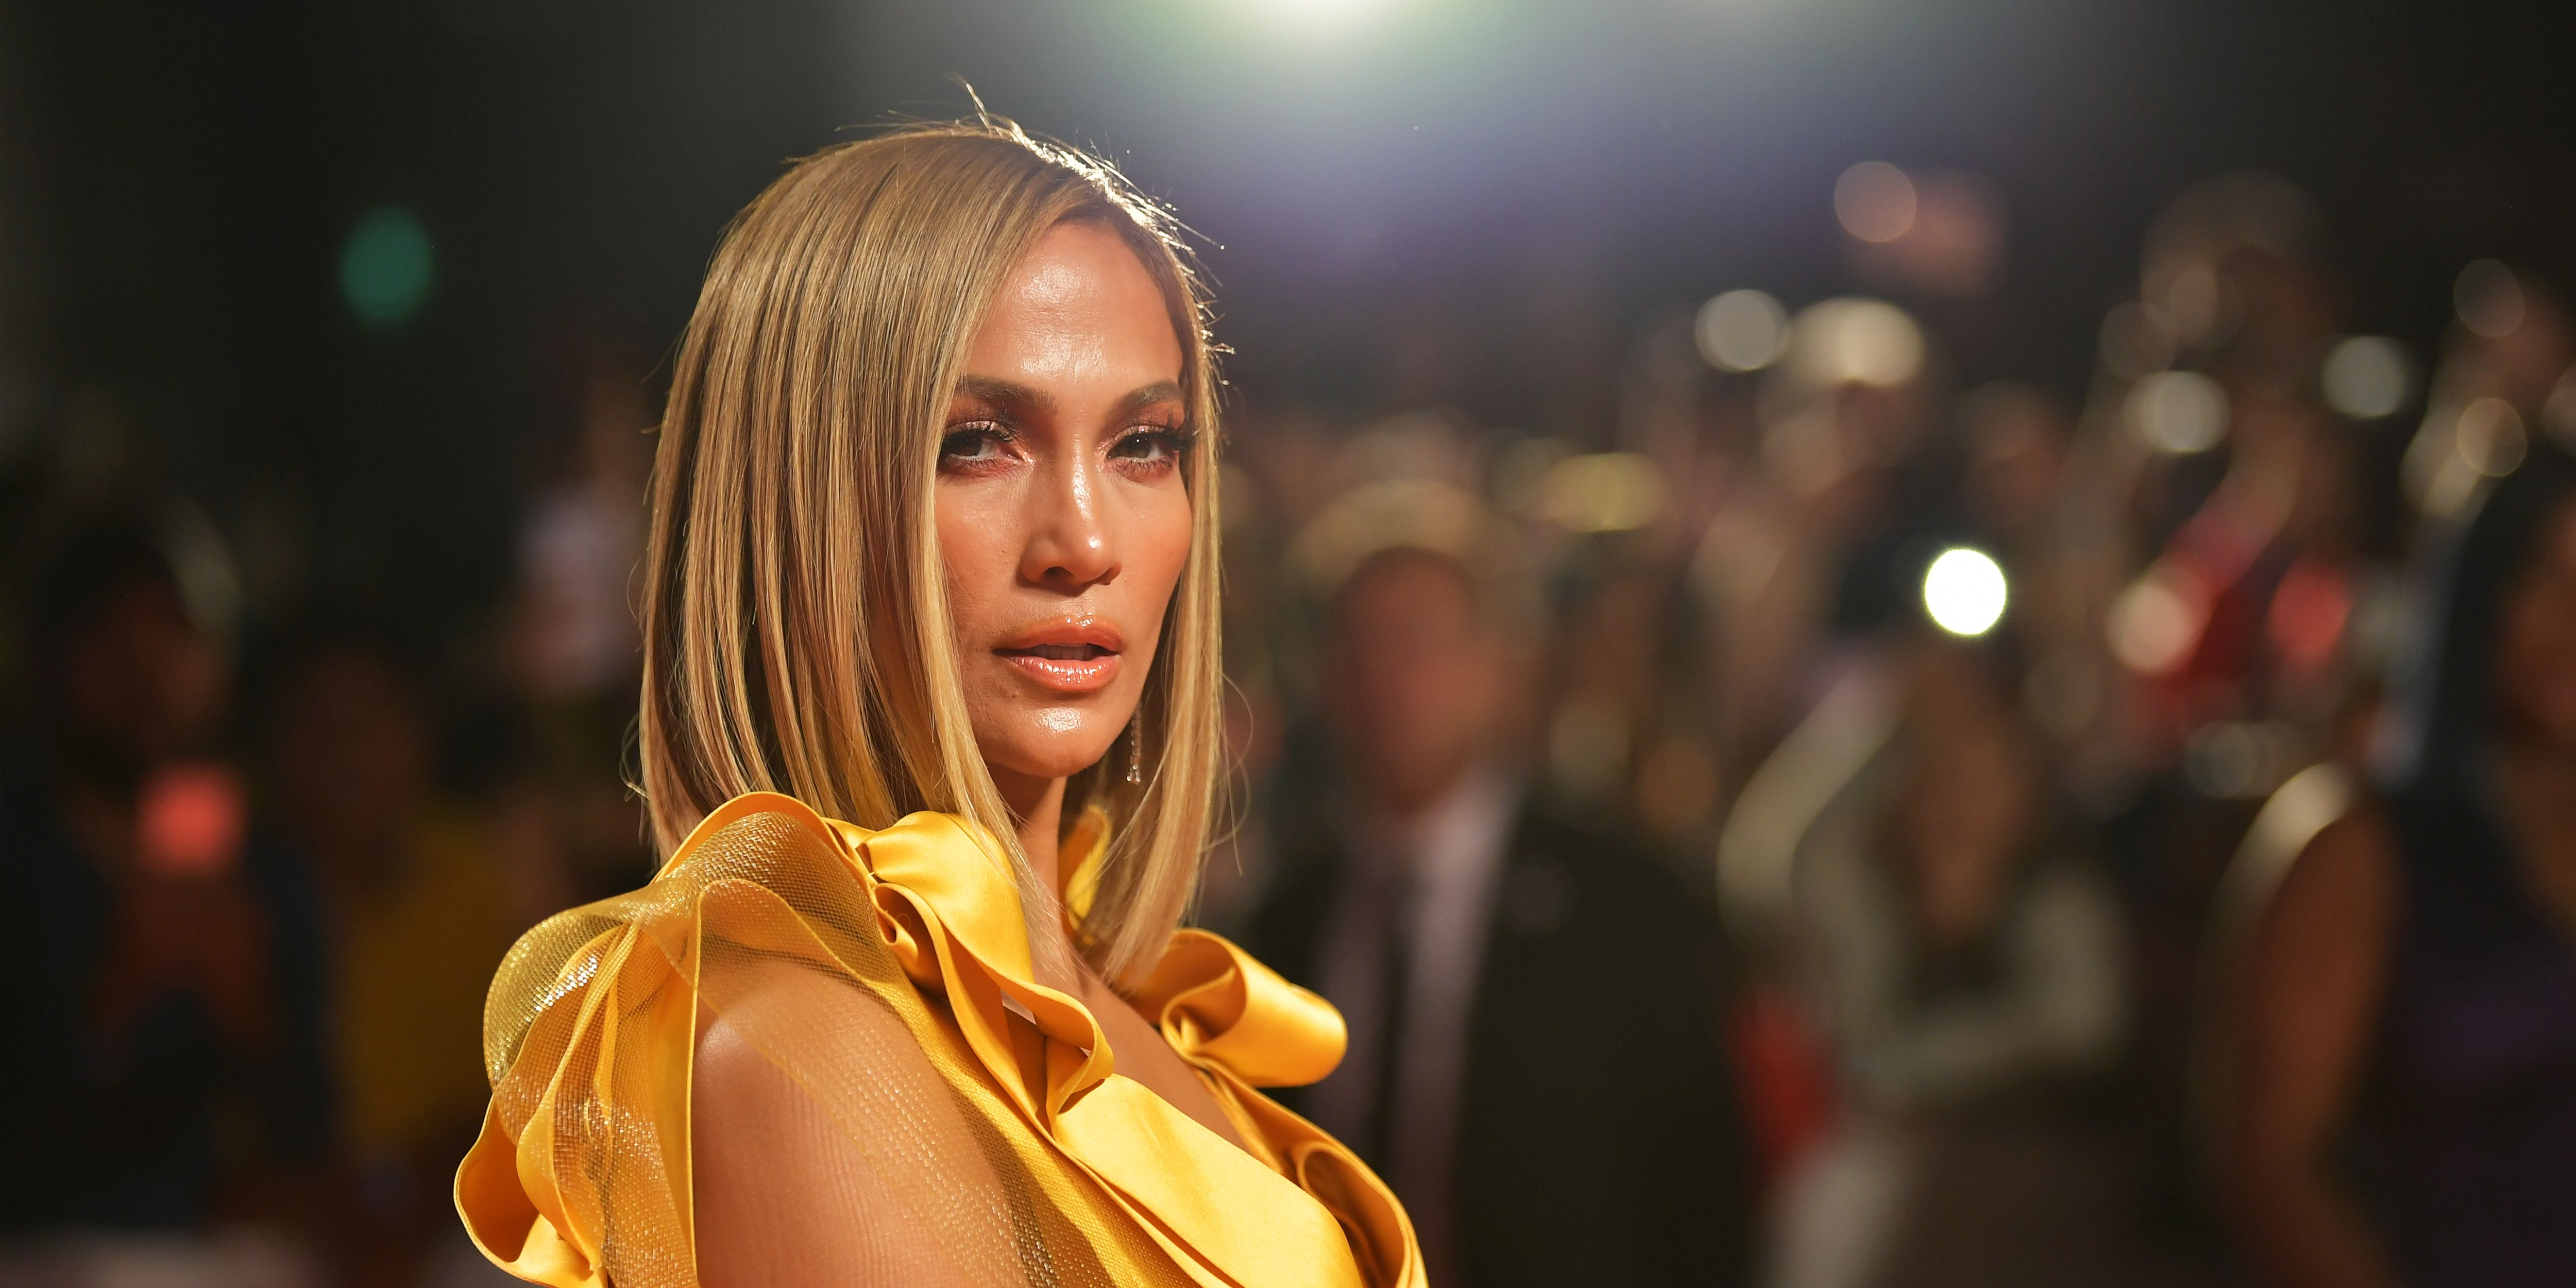 J.Lo on Her New Shoe Line, Working From Home, and Self-Isolation